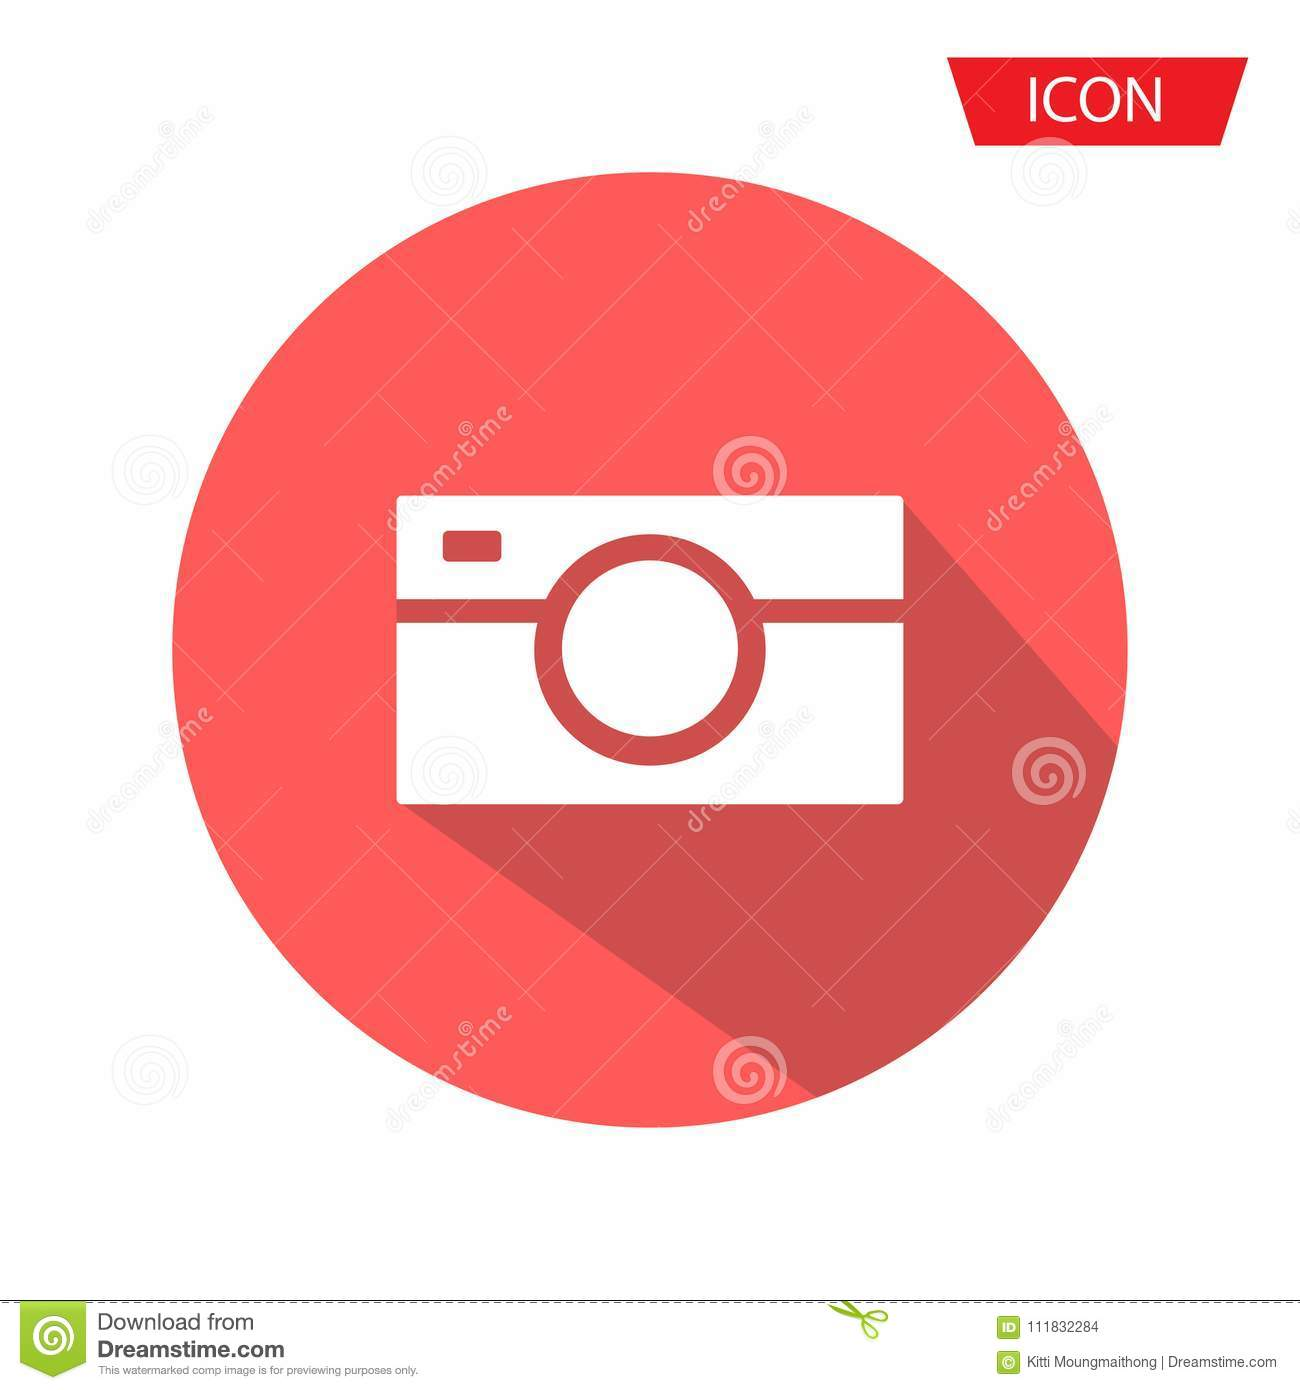 Camera Icon in trendy flat style isolated on background